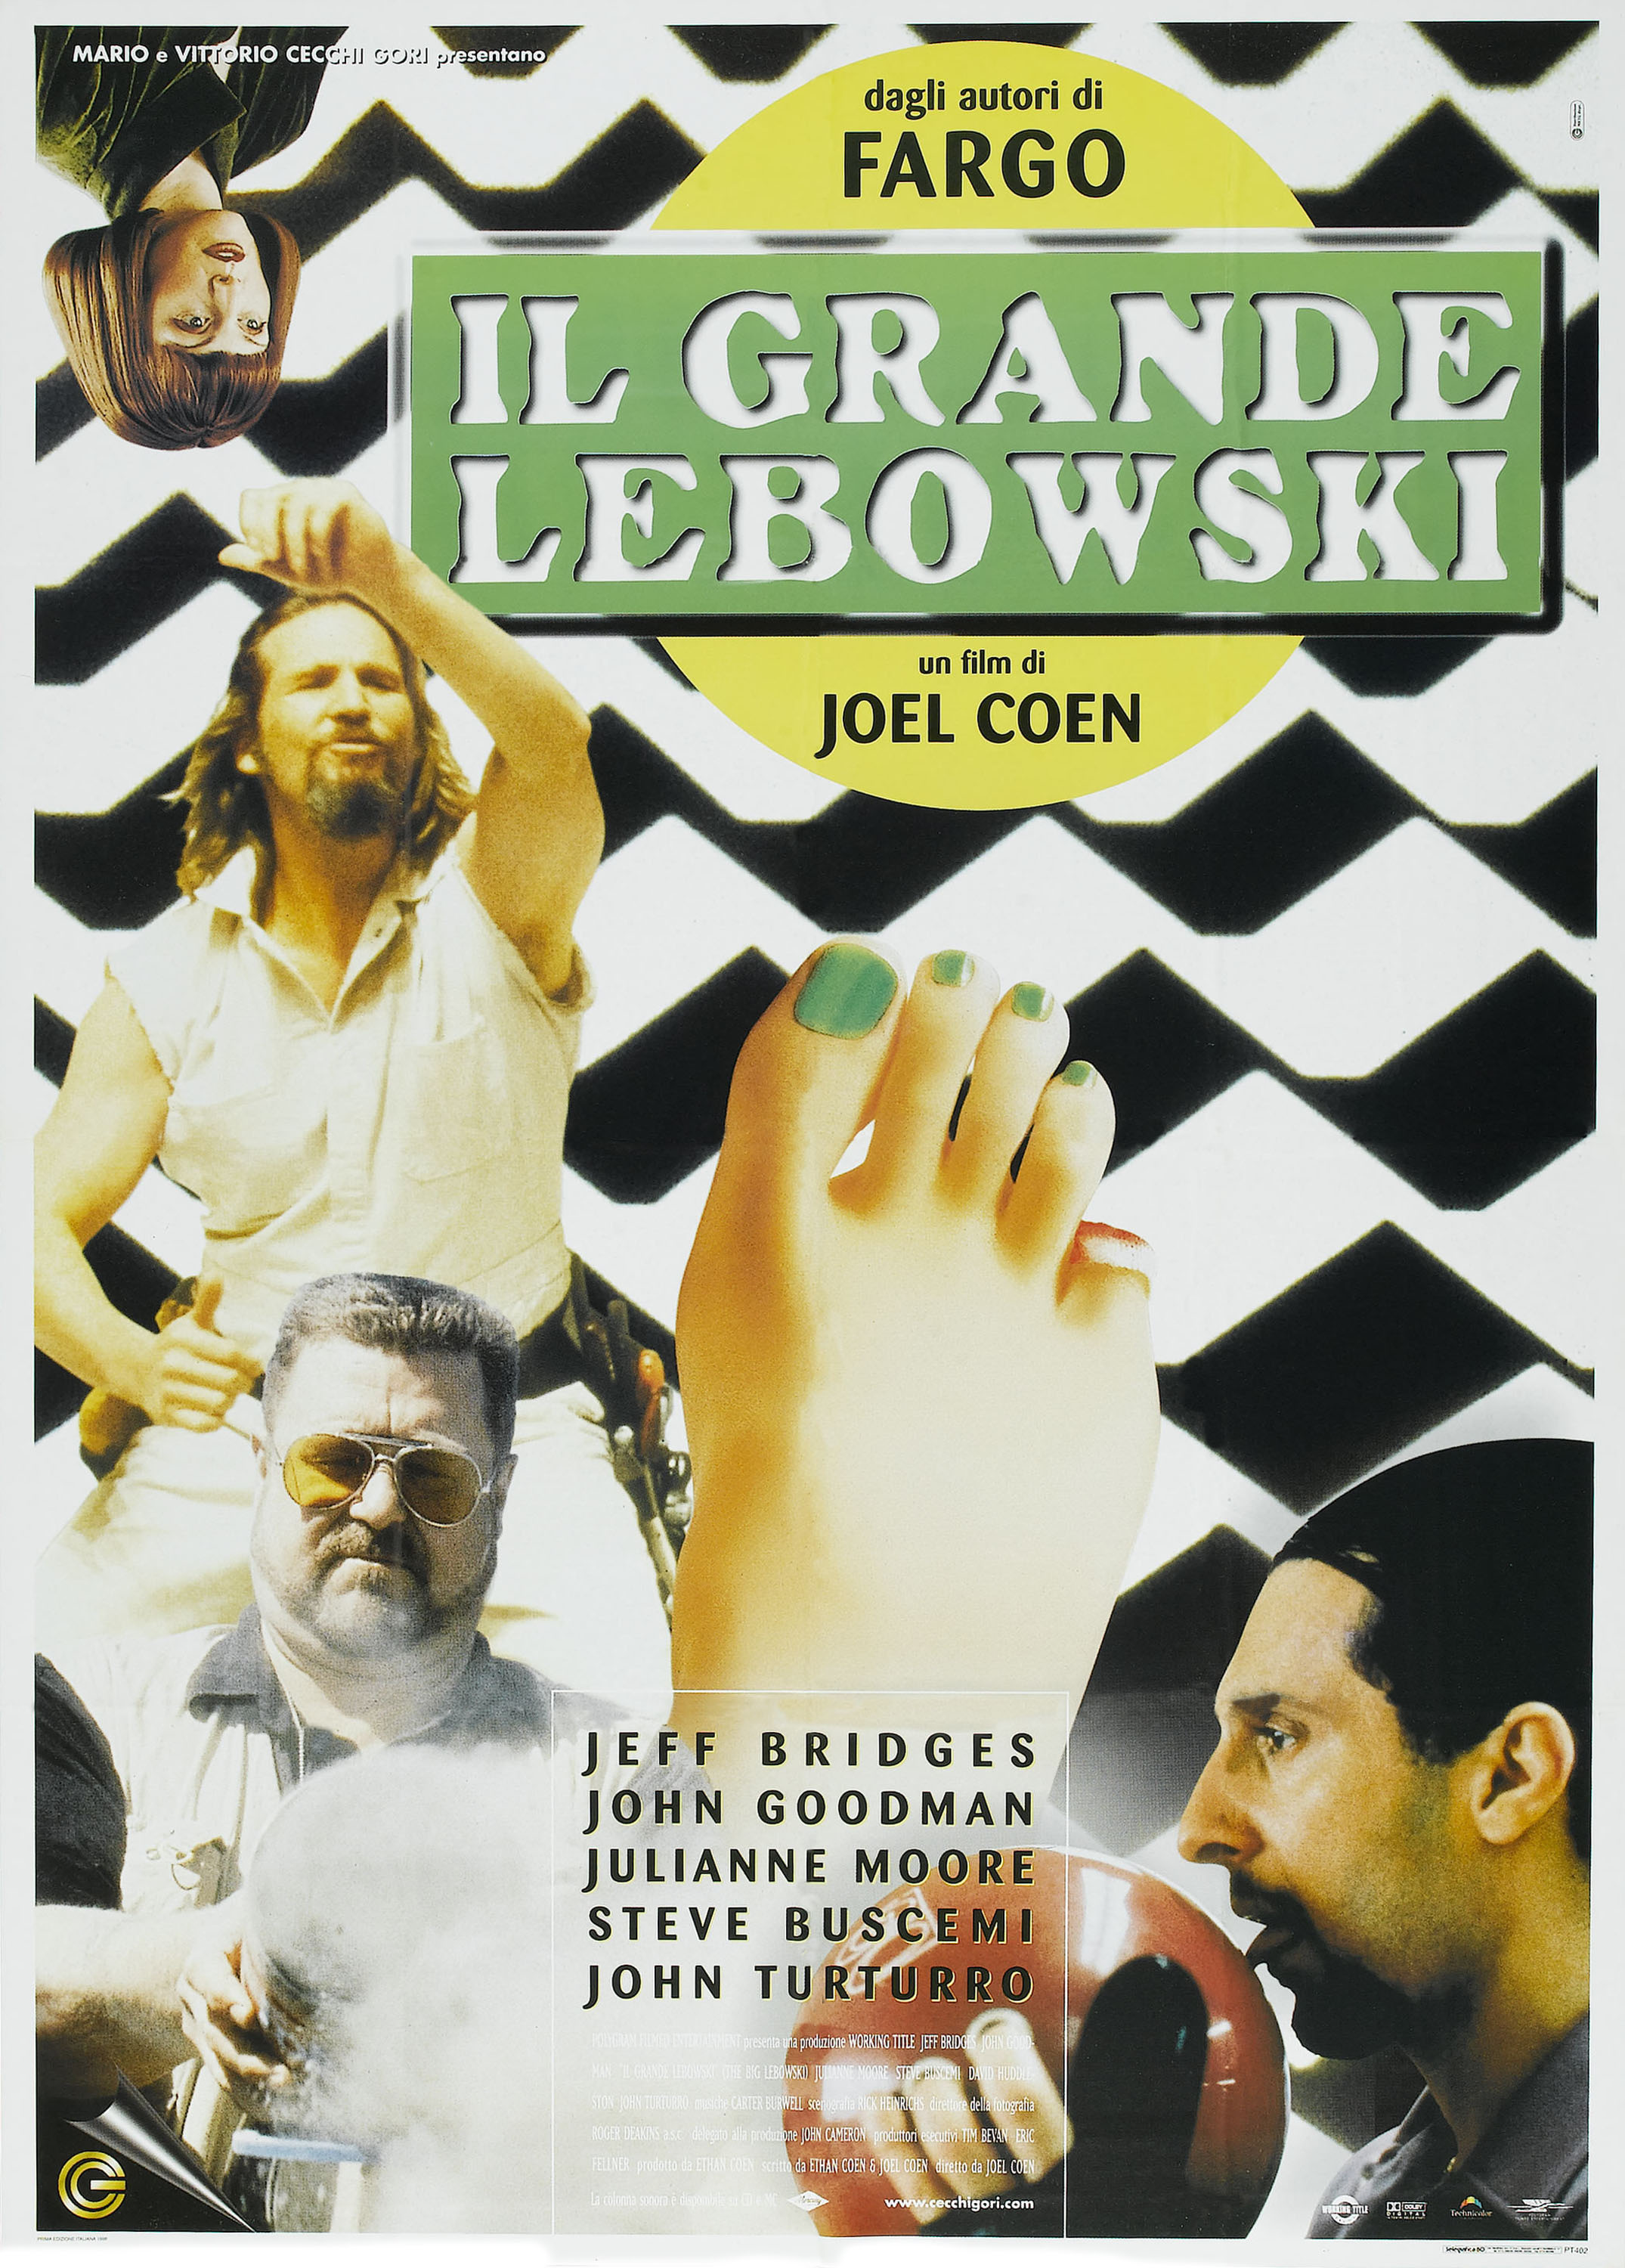 an analysis of the big lebowski a film noir by the coen brothers Amazoncom: the big lebowski: the making of a coen brothers film (9780393350883): william preston robertson, tricia cooke, john todd anderson, rafael sañudo: books.